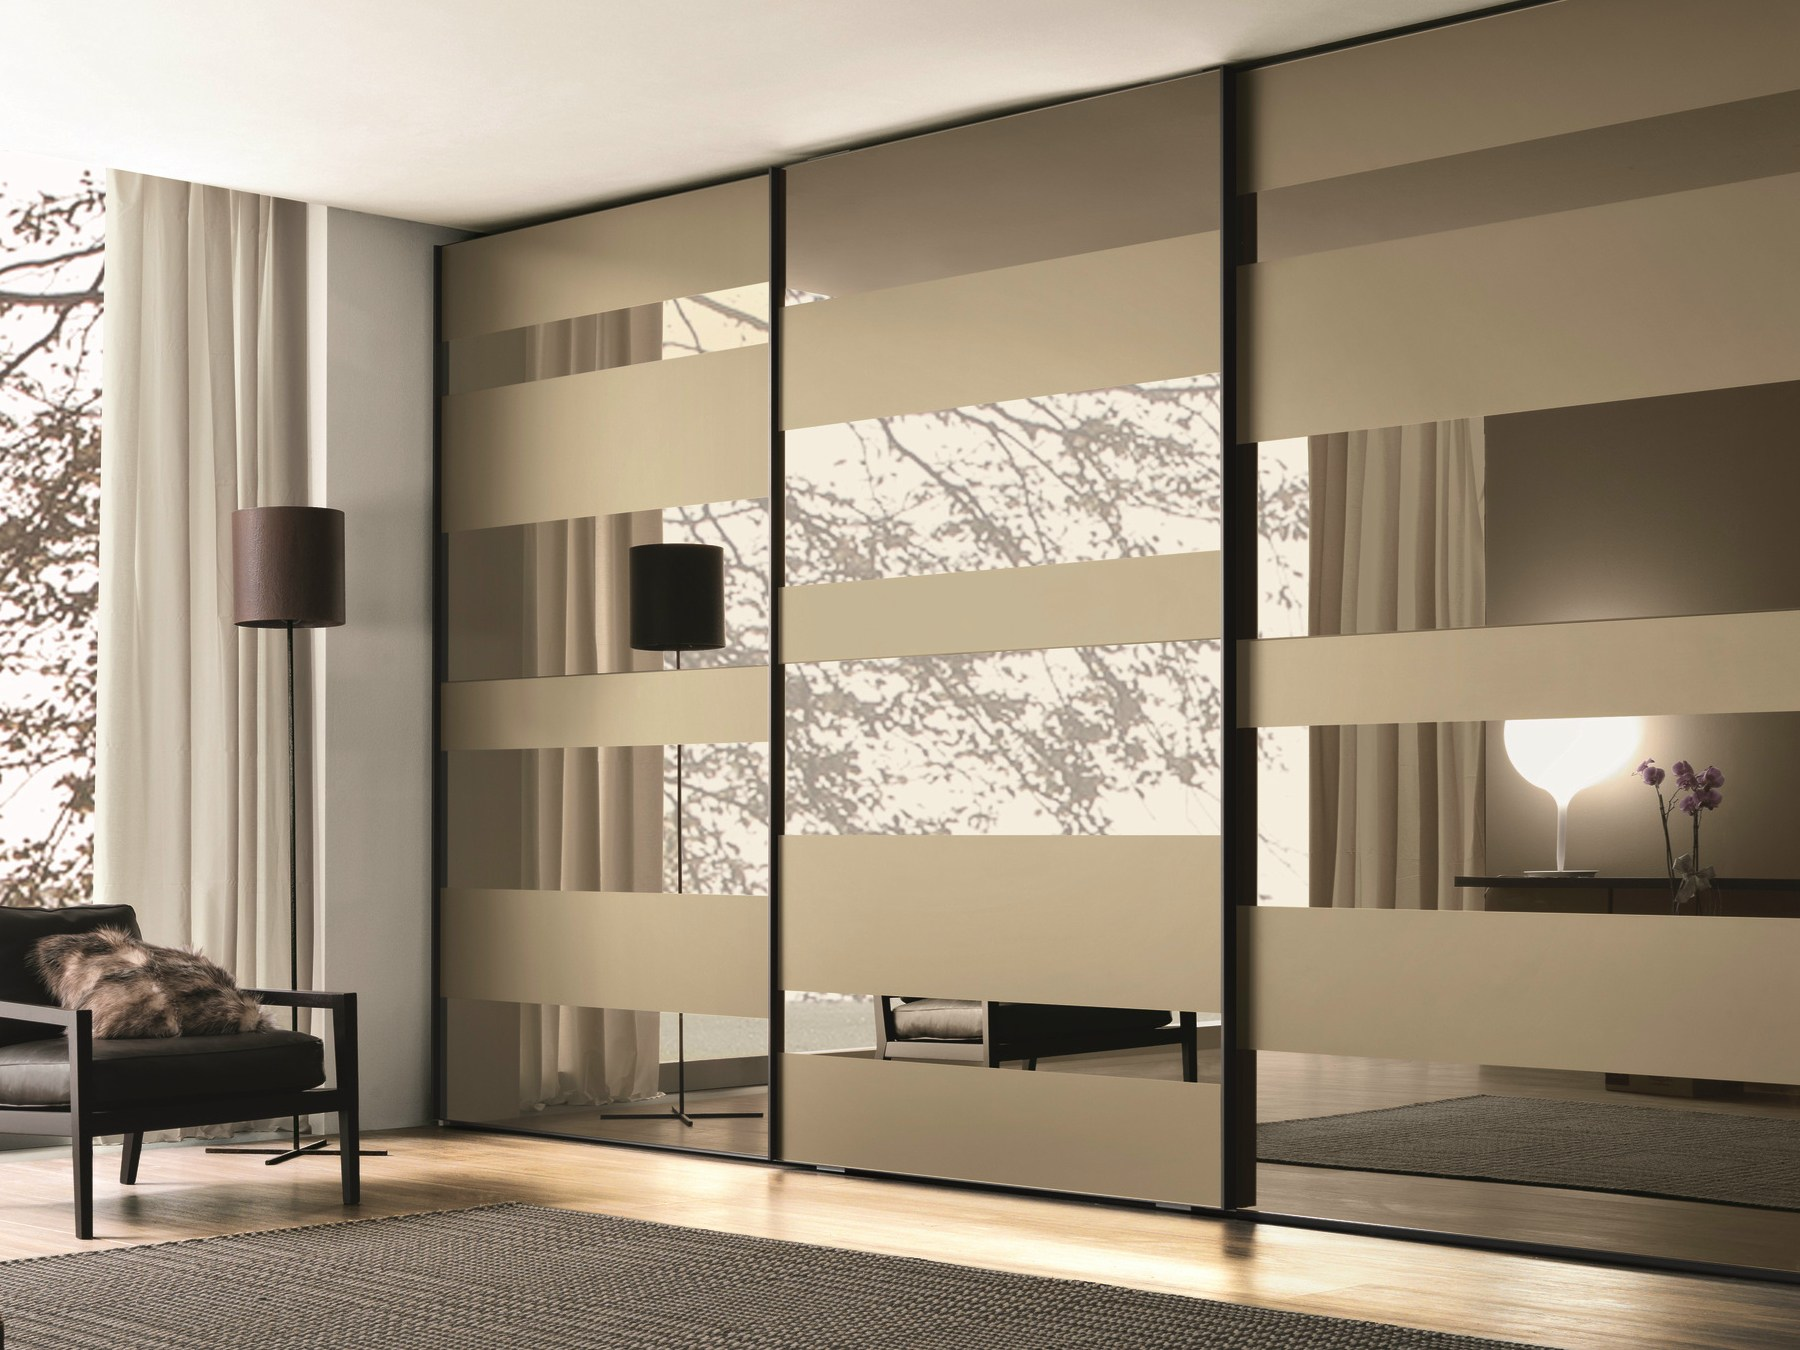 Stunning 35 Modern Wardrobe Furniture Designs | Mirror glass, Design and Wardrobe glass wardrobe designs for bedroom